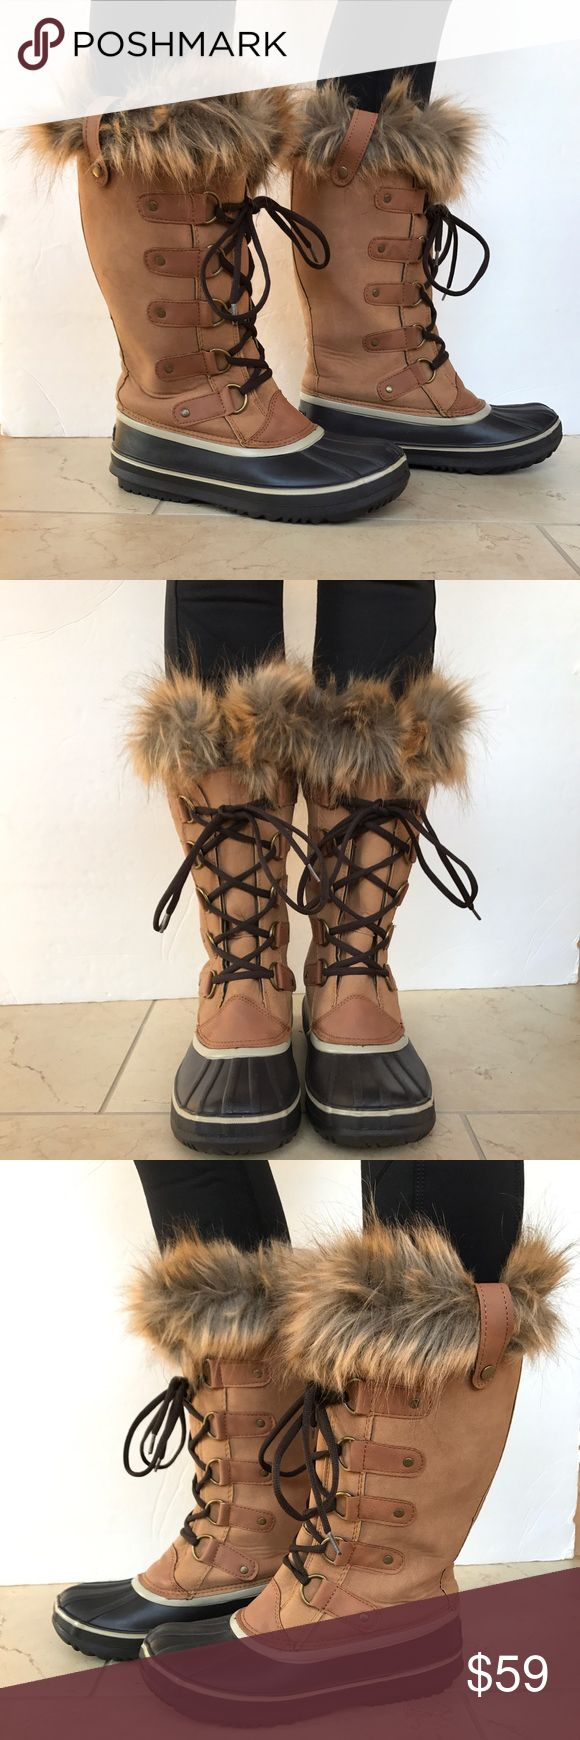 NEW Esprit winter boots with fur trim New Esprit fur trimmed winter snow boots. Rubber Upper with faux fur trim. Heavy rubber lug sole with traction for sure footing in winter weather. Soft and thick interior felt lining for all day warmth. New no box. Esprit Shoes Winter & Rain Boots